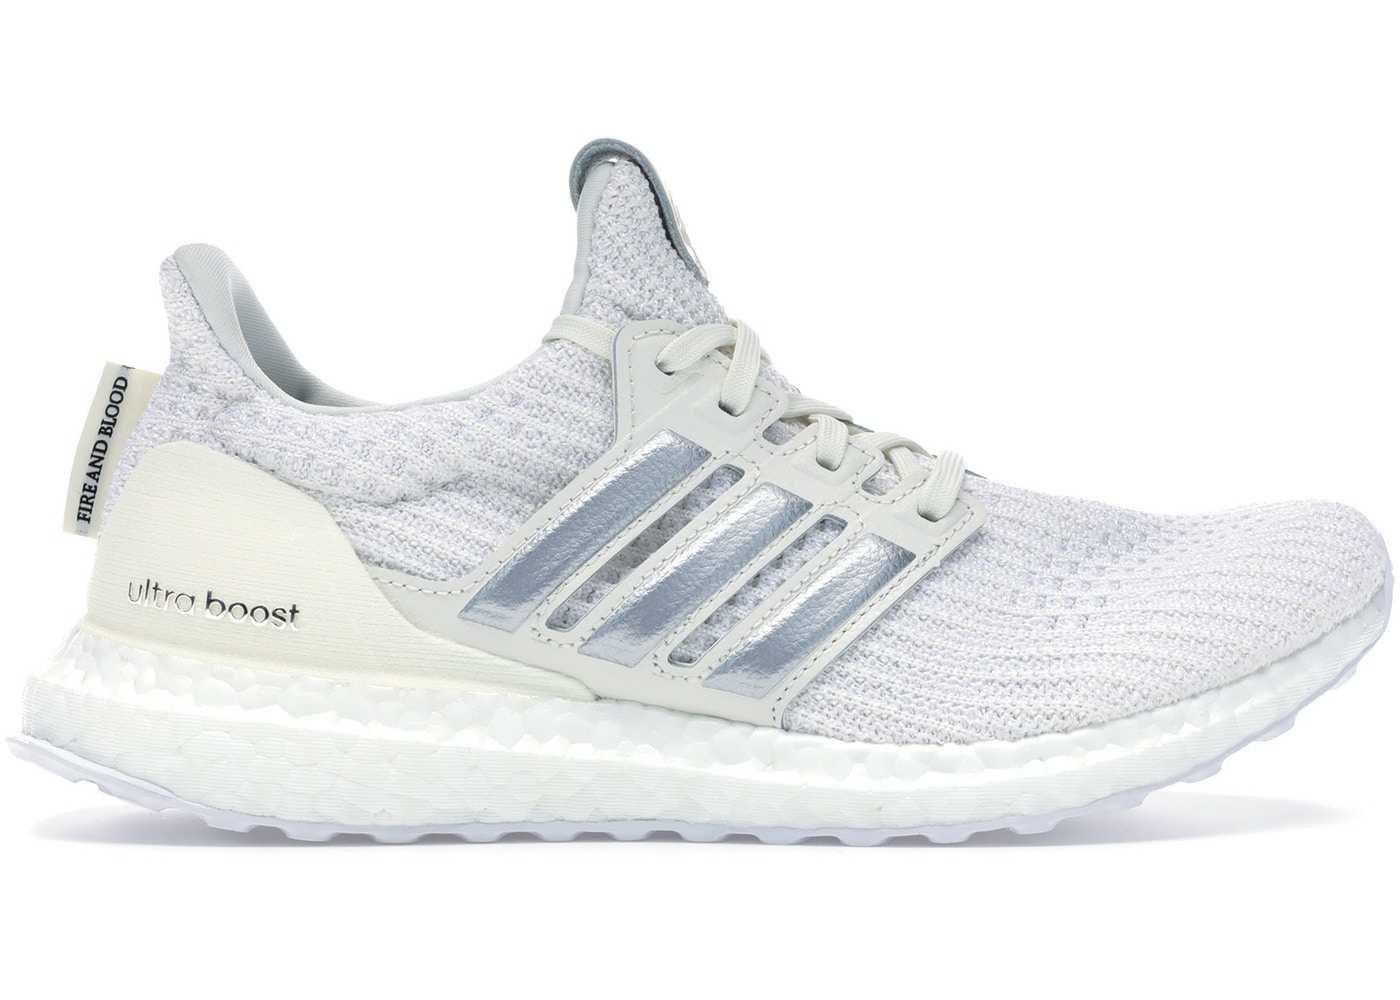 f3b3cefc adidas Ultra Boost 4.0 Game of Thrones House Targaryen White (W ...